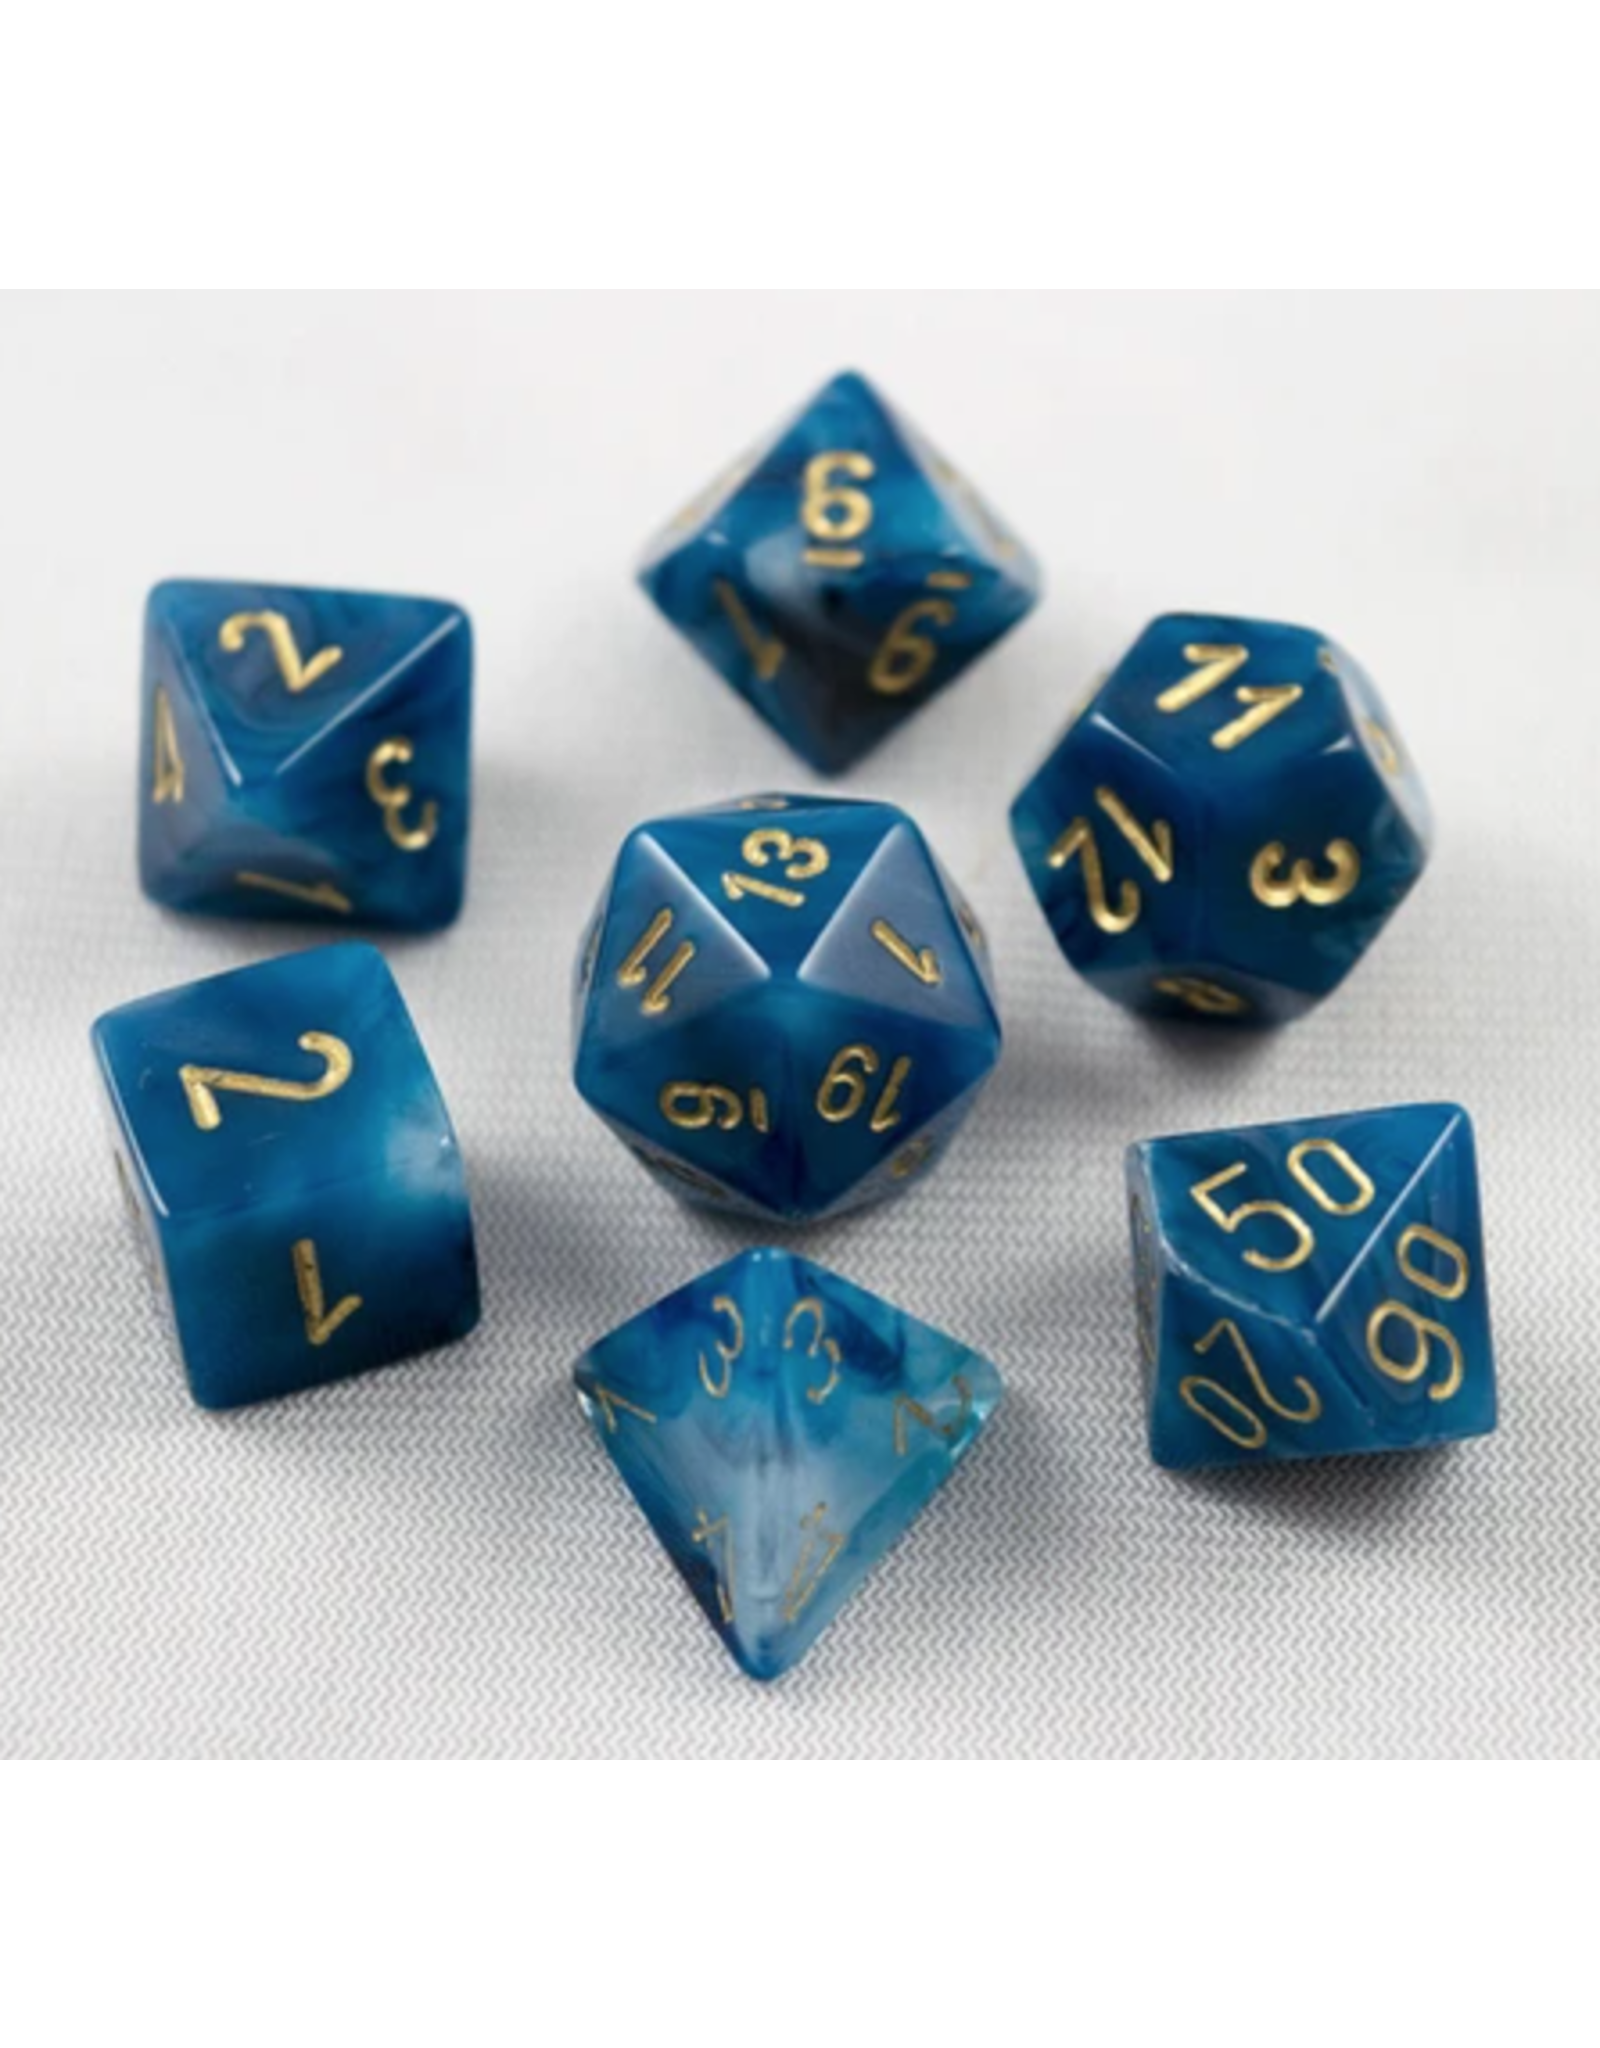 Chessex 7-Set Polyhedral Phantom Polyhedral Teal/gold